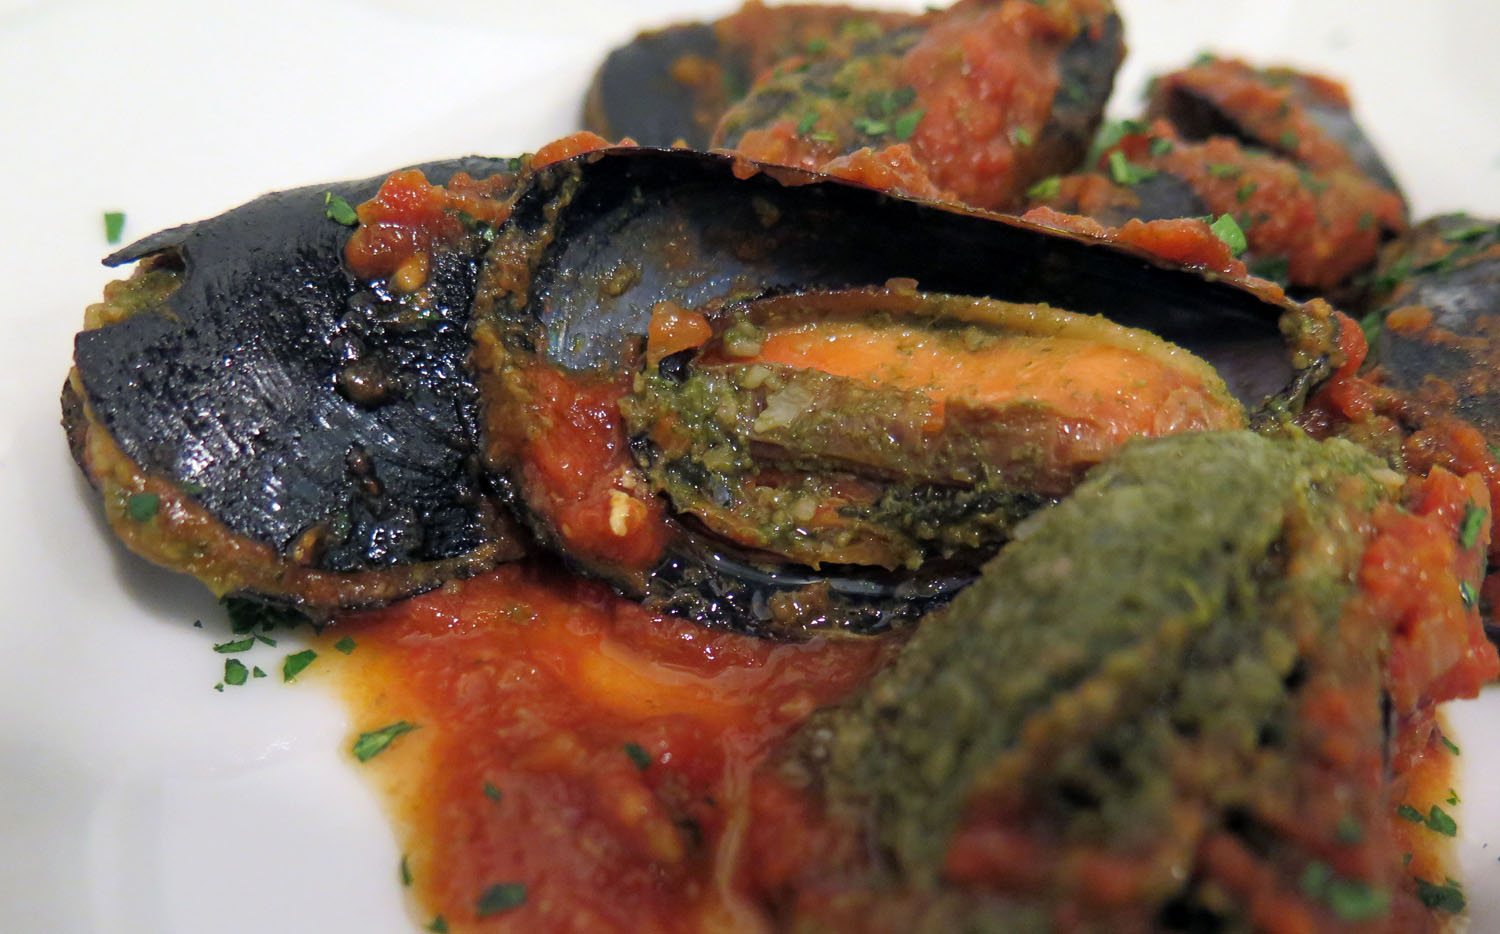 Italy-Cinque-Terre-Food-And-Drink-Mussels